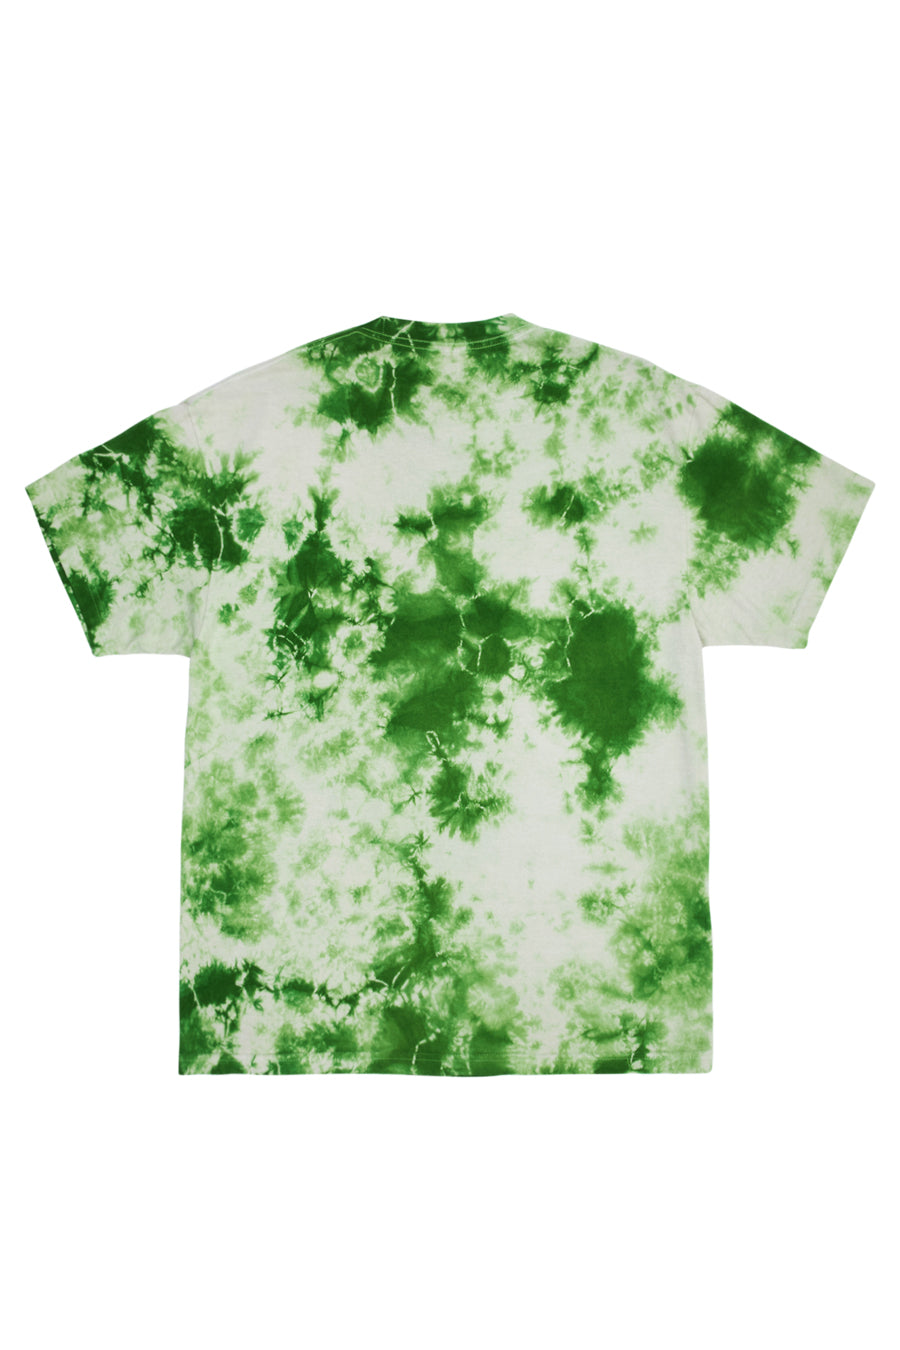 Pleasures - Green Aroma Crystal Dye T-Shirt | 1032 SPACE